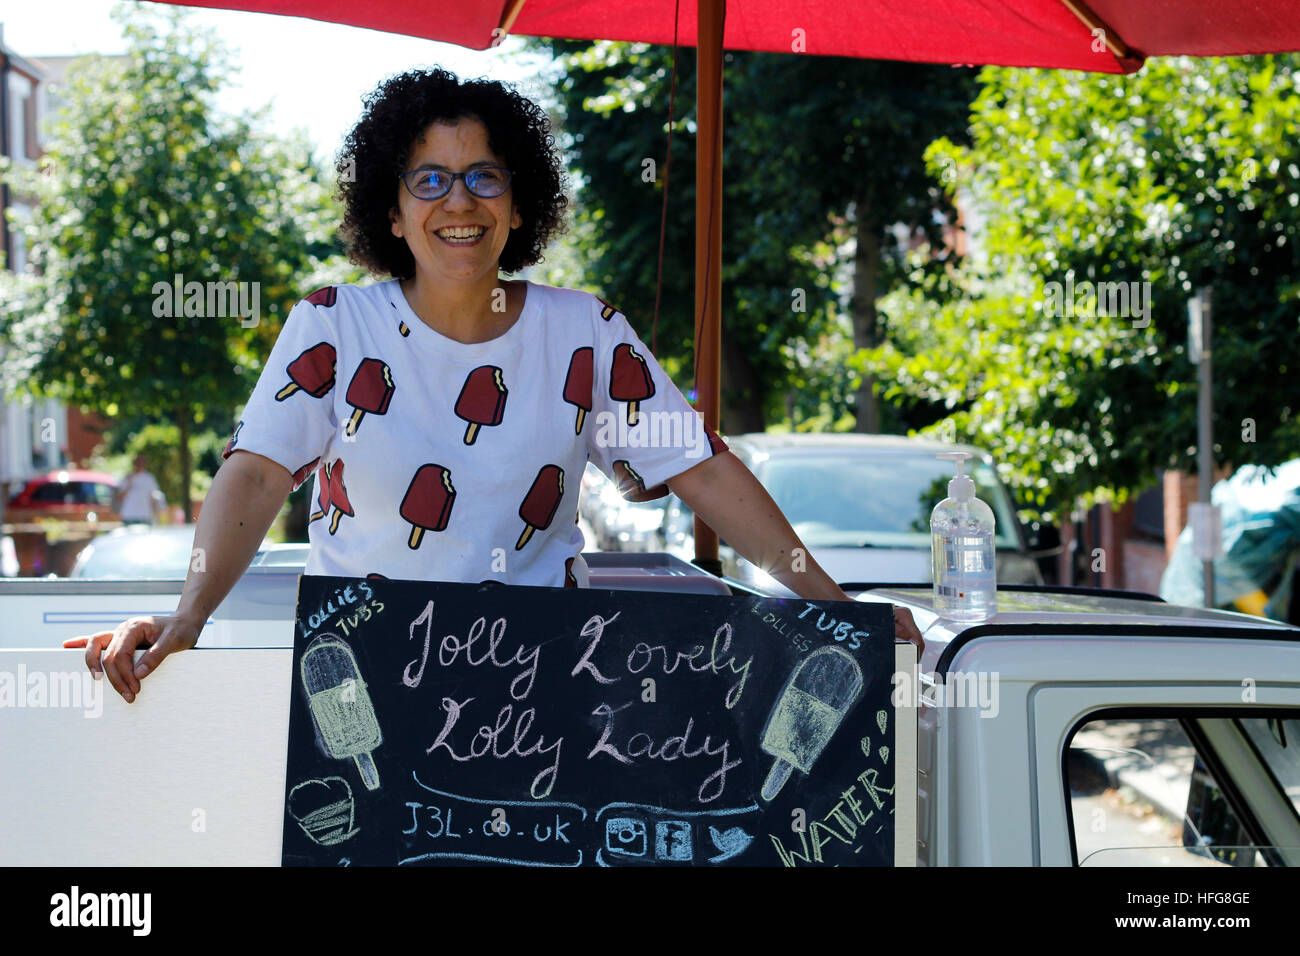 The Jolly Lovely Lolly Lady, selling delicious at the top of Parliament Hill on a hot August day - Stock Image